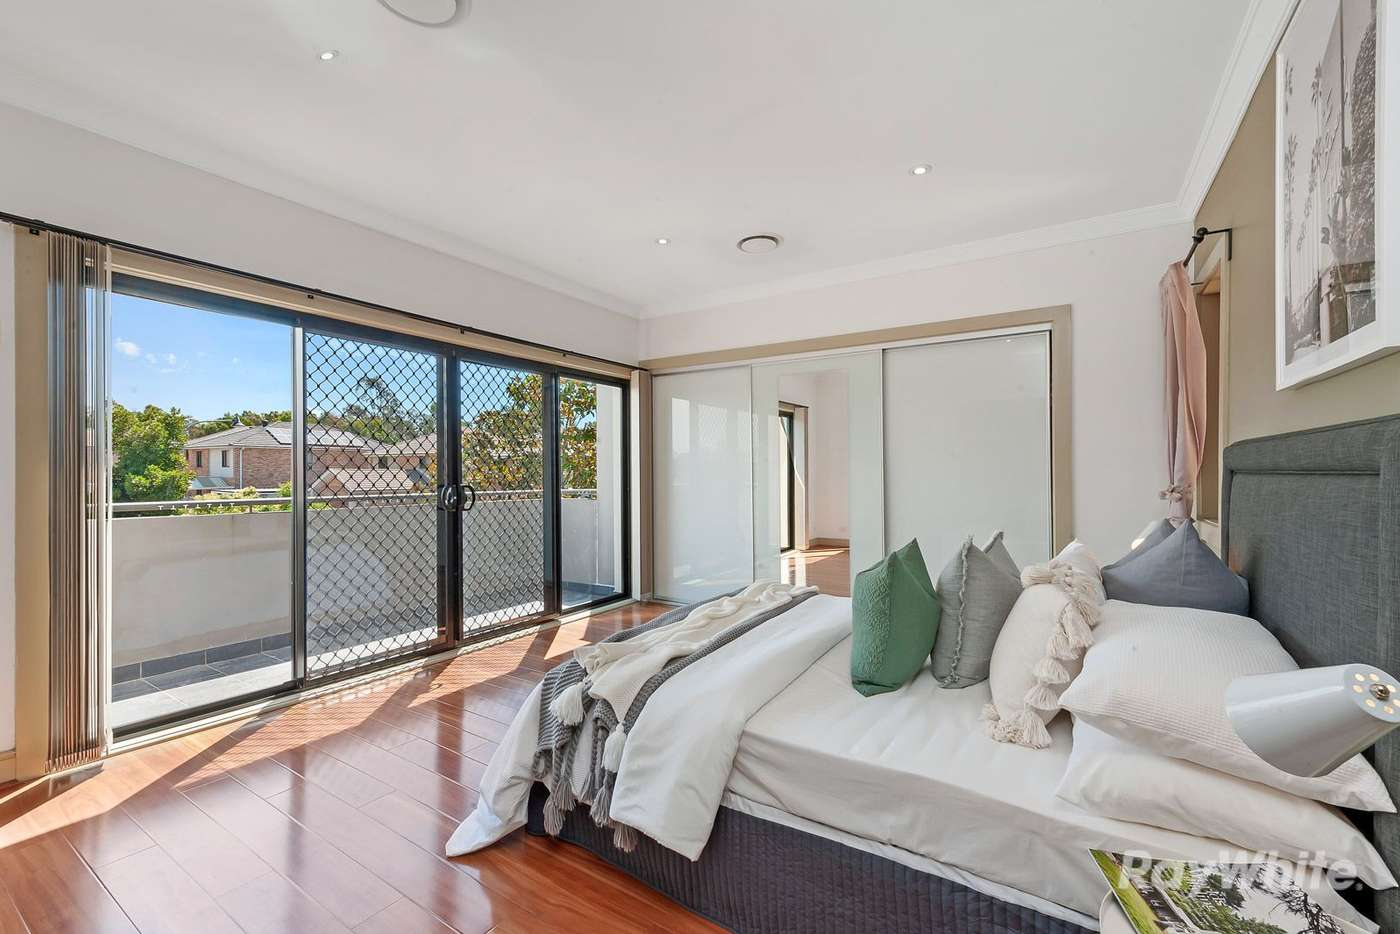 Sixth view of Homely house listing, 8 Malton Street, Stanhope Gardens NSW 2768